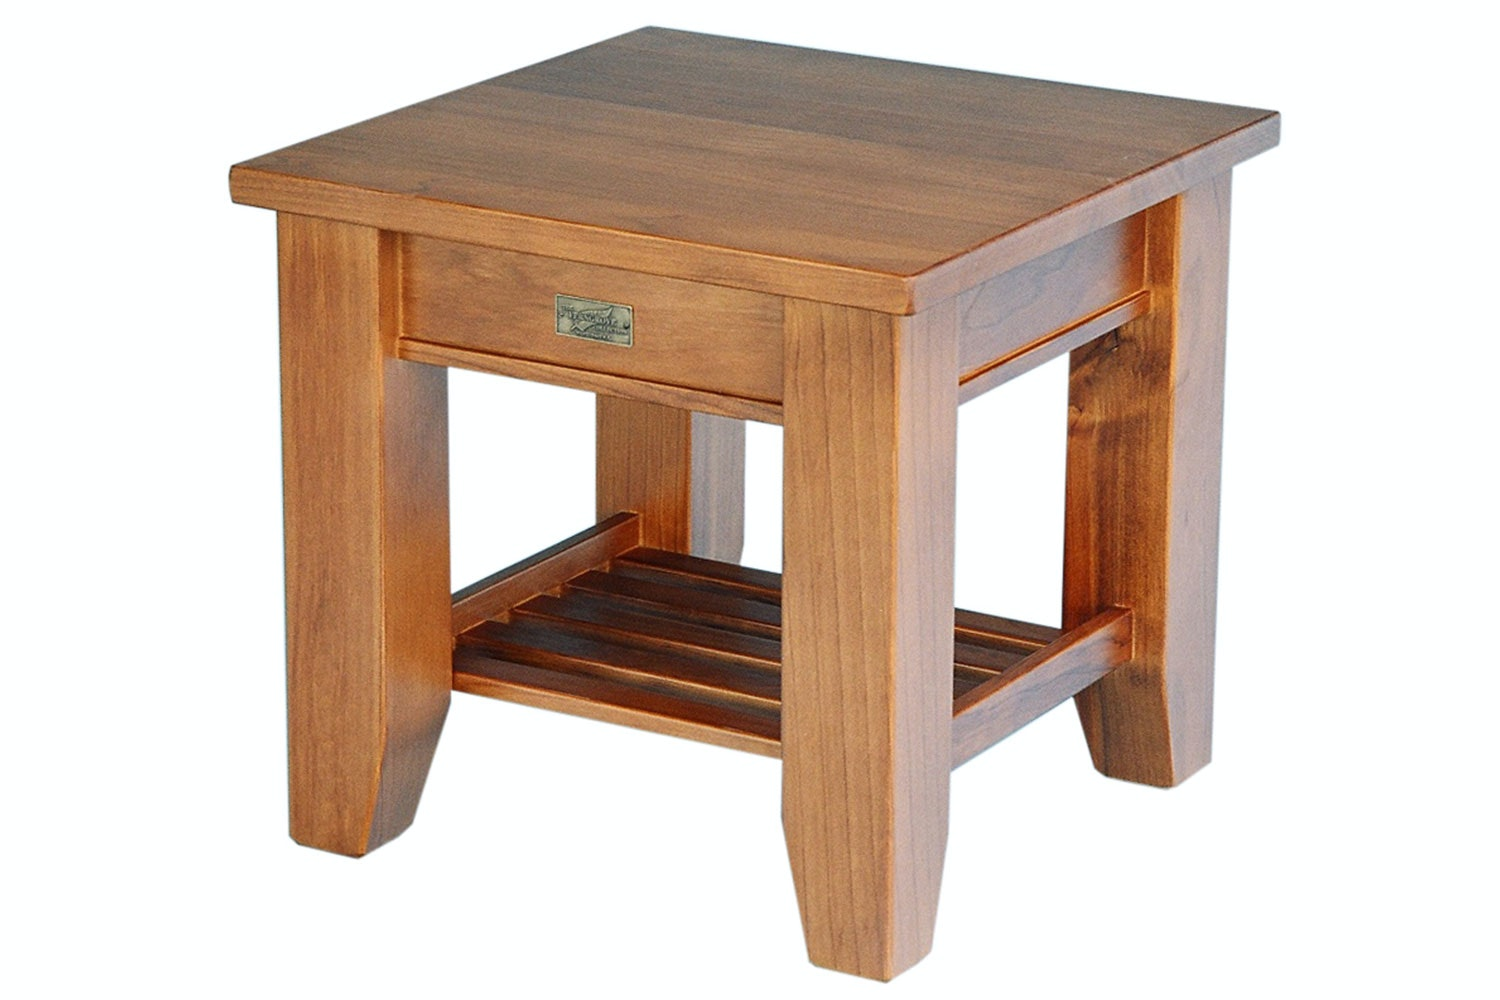 Ferngrove Lamp Table with Rack by Coastwood Furniture